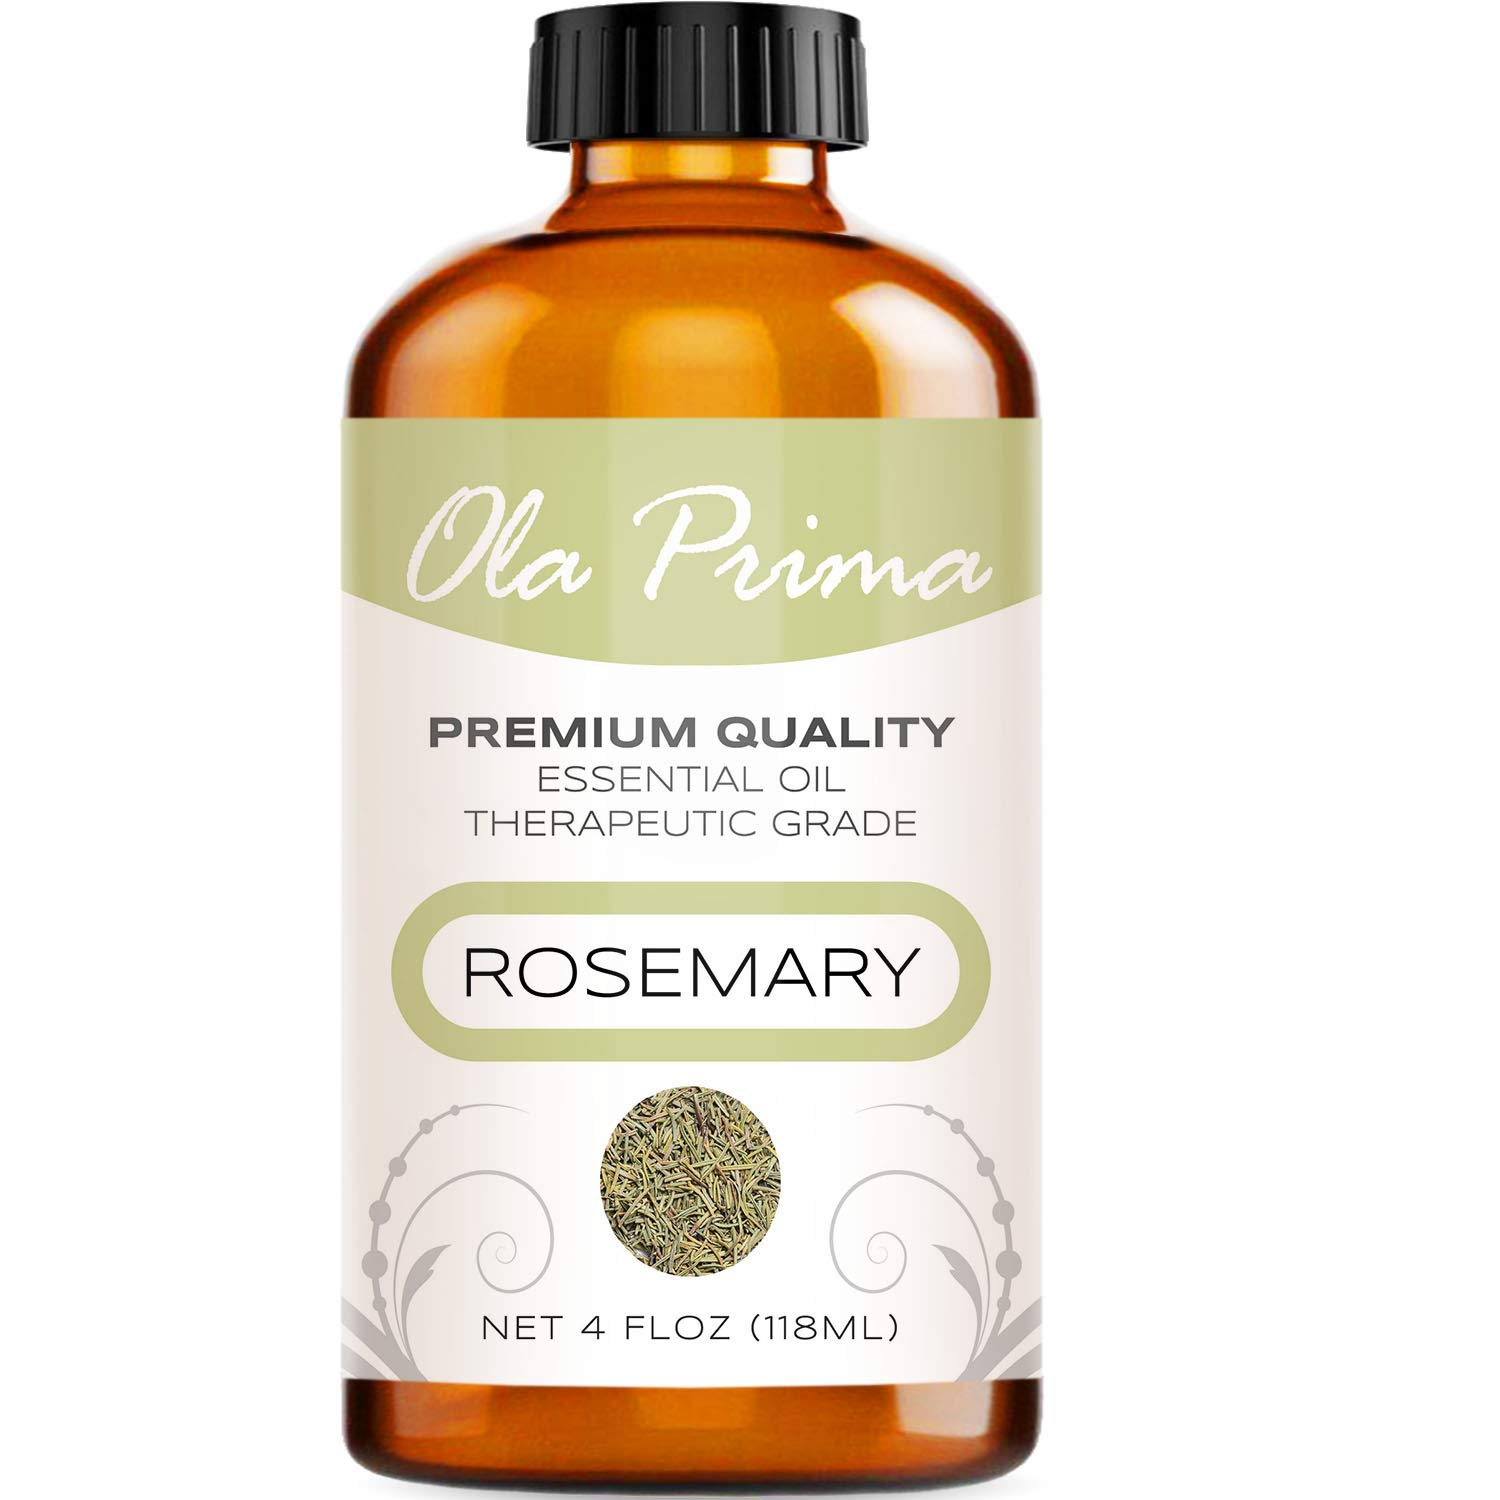 Ola Prima 4oz - Premium Quality Rosemary Essential Oil (4 Ounce Bottle) Therapeutic Grade Rosemary Oil